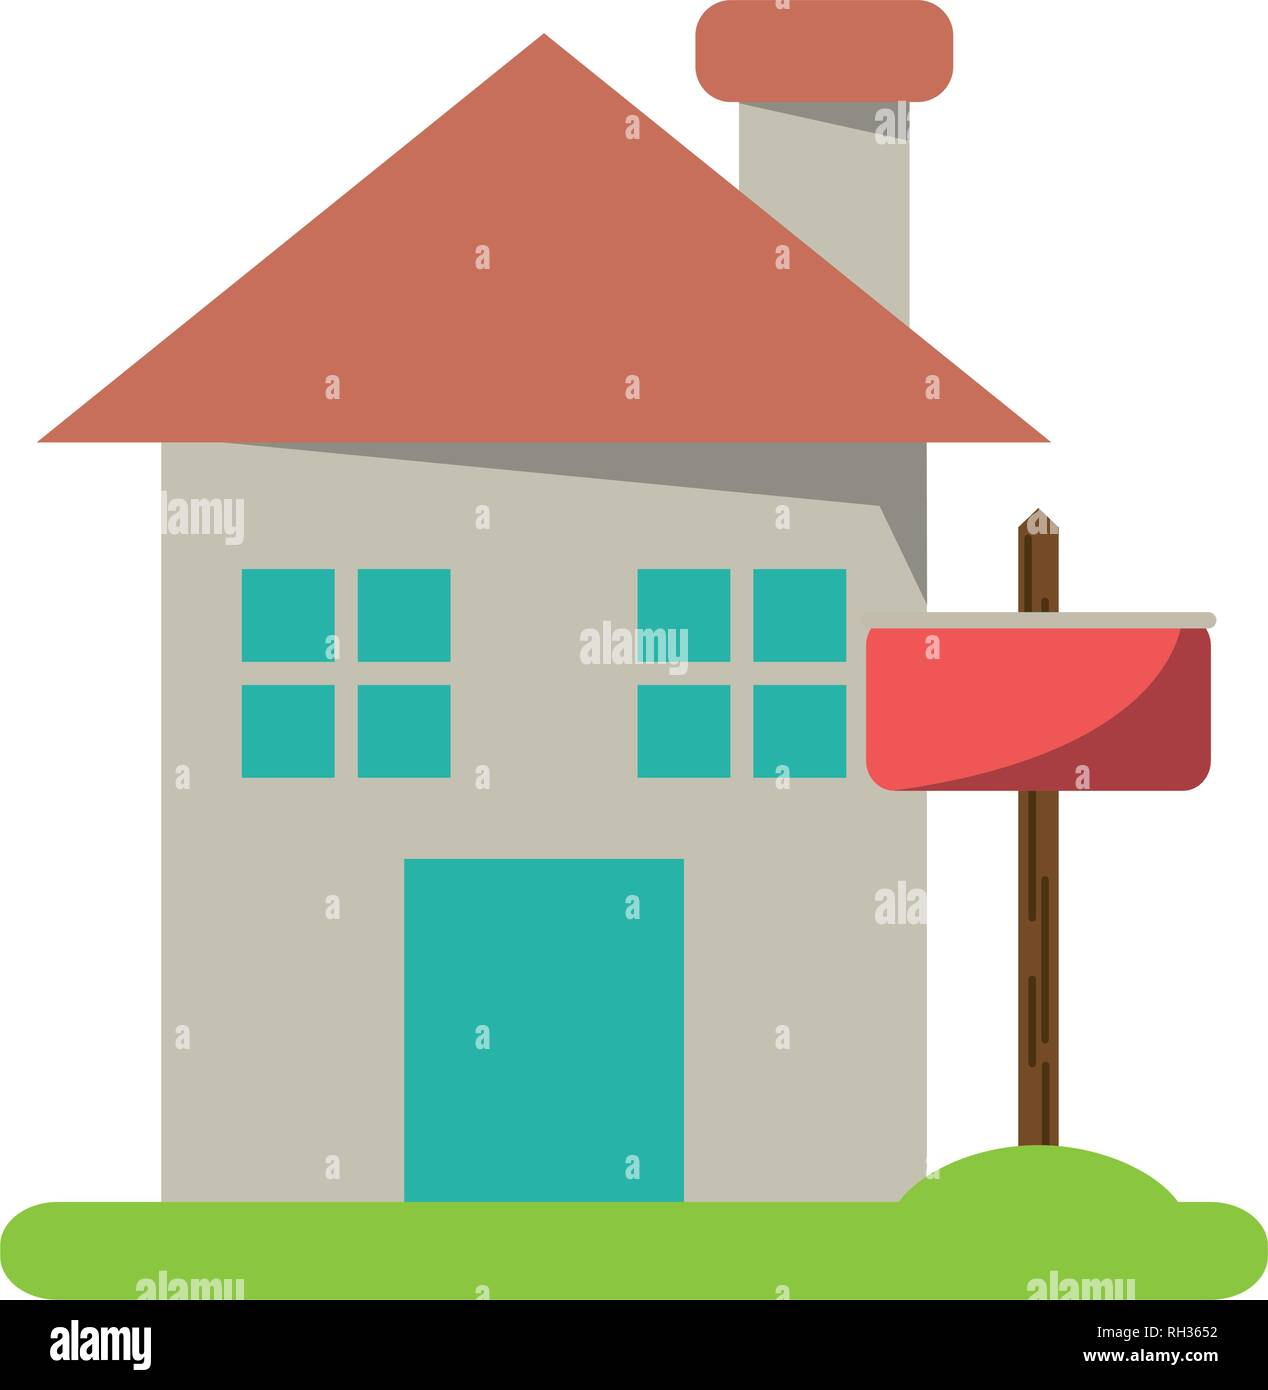 Real estate house - Stock Image